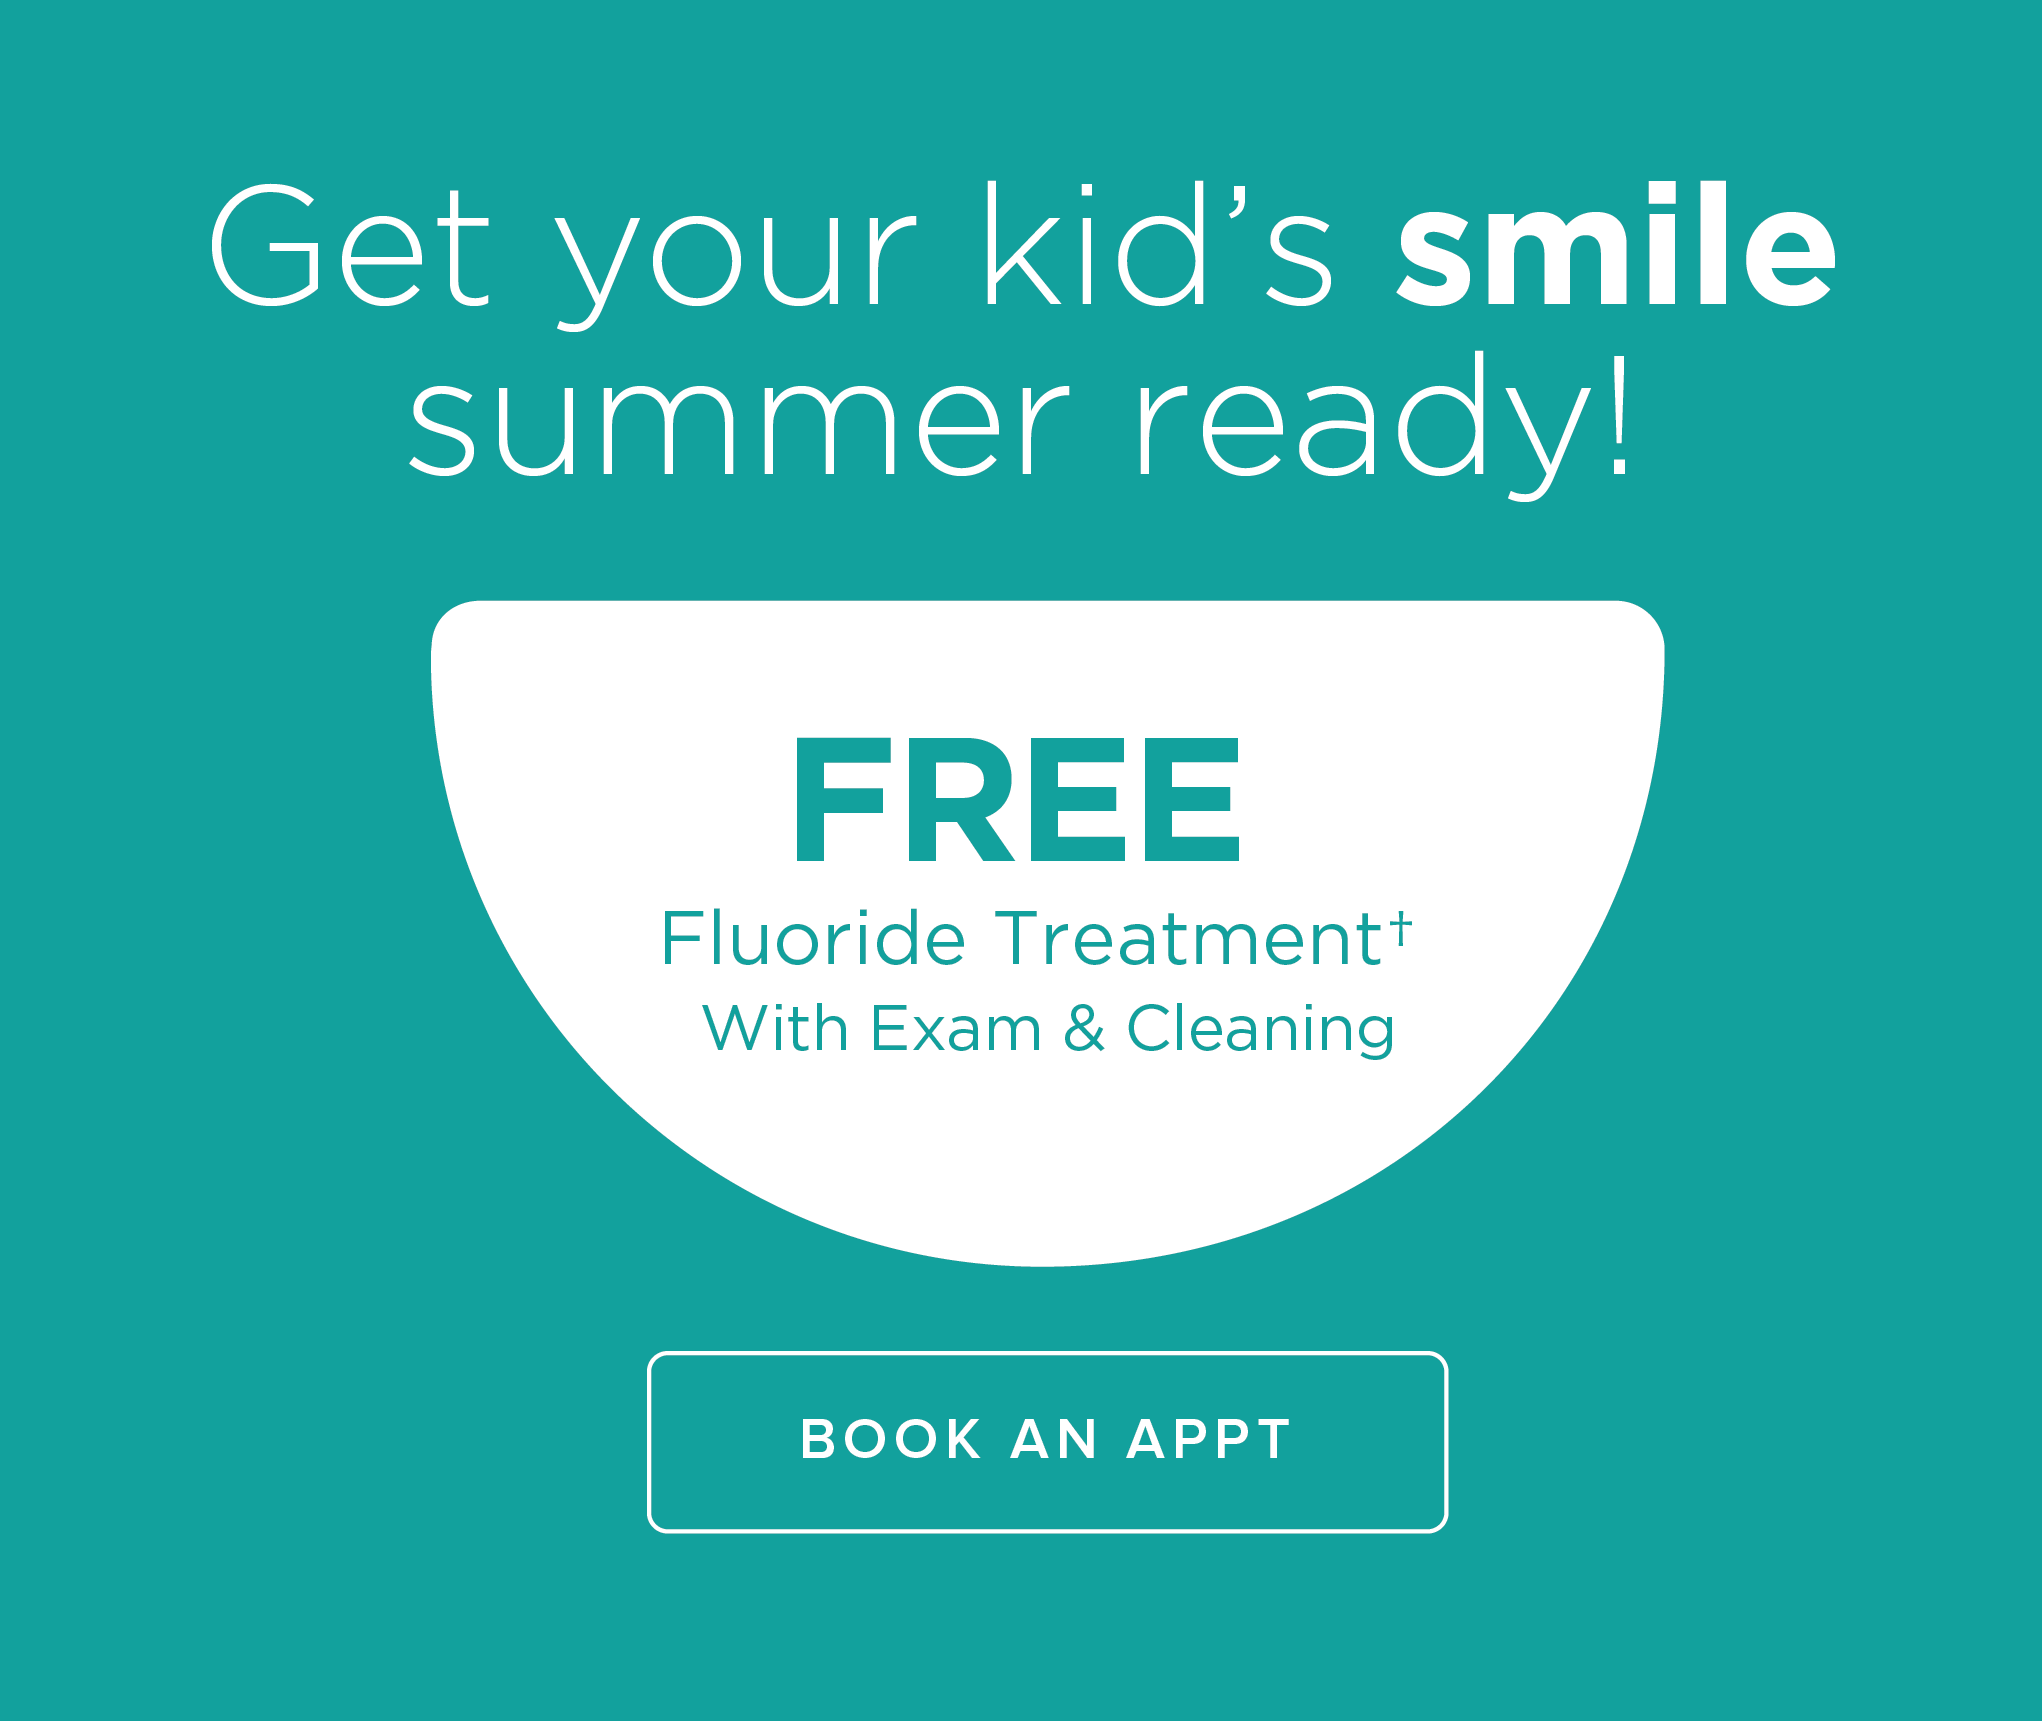 Get your kid's smile summer ready! Free Fluroide Treatment with Exam & Cleansing✝. Book an appointment.